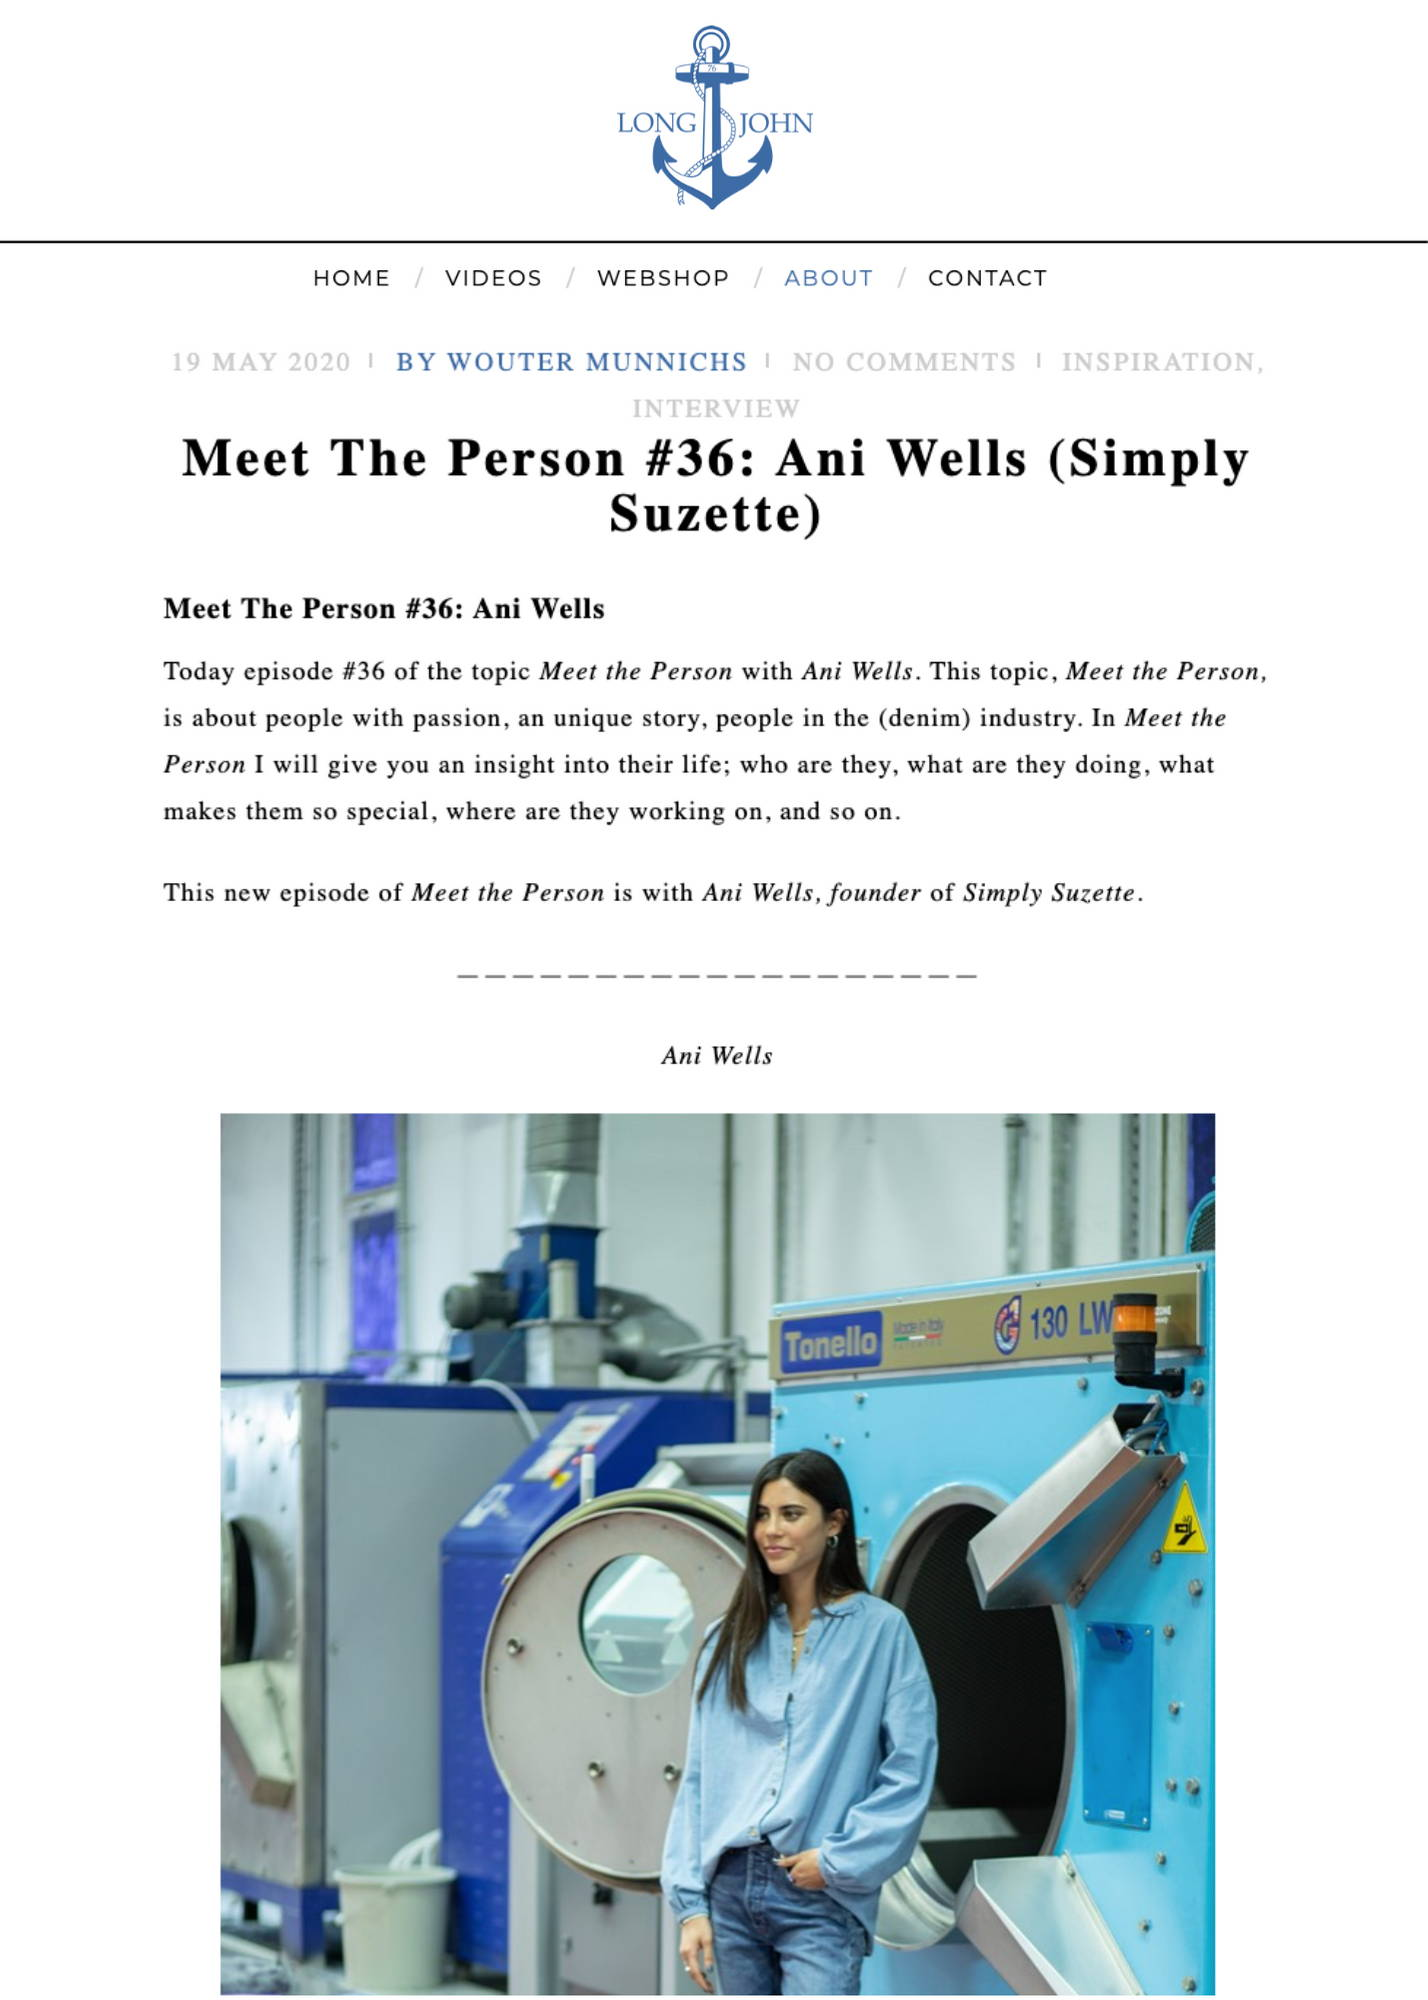 Meet The Person #36: Ani Wells (Simply Suzette) Article